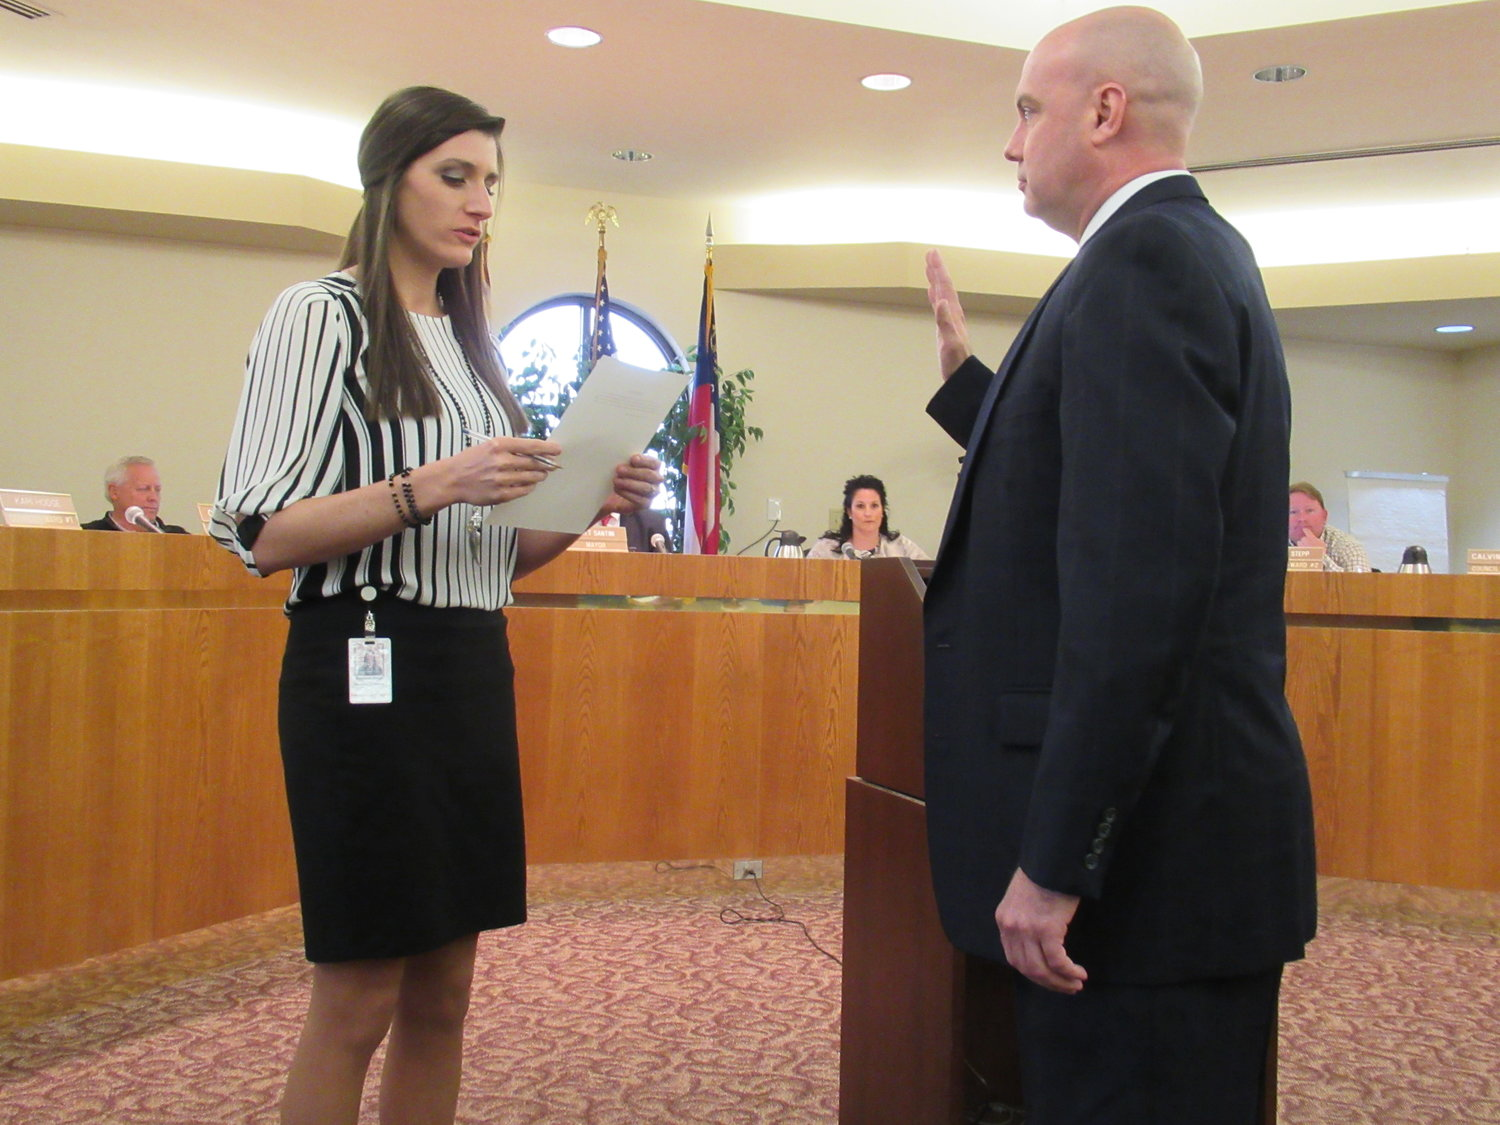 Cartersville City Clerk Meredith Ulmer swears in the City's new parks and recreation director Tom Gilliam, shortly after the council voted 4-1 to approve his appointment.